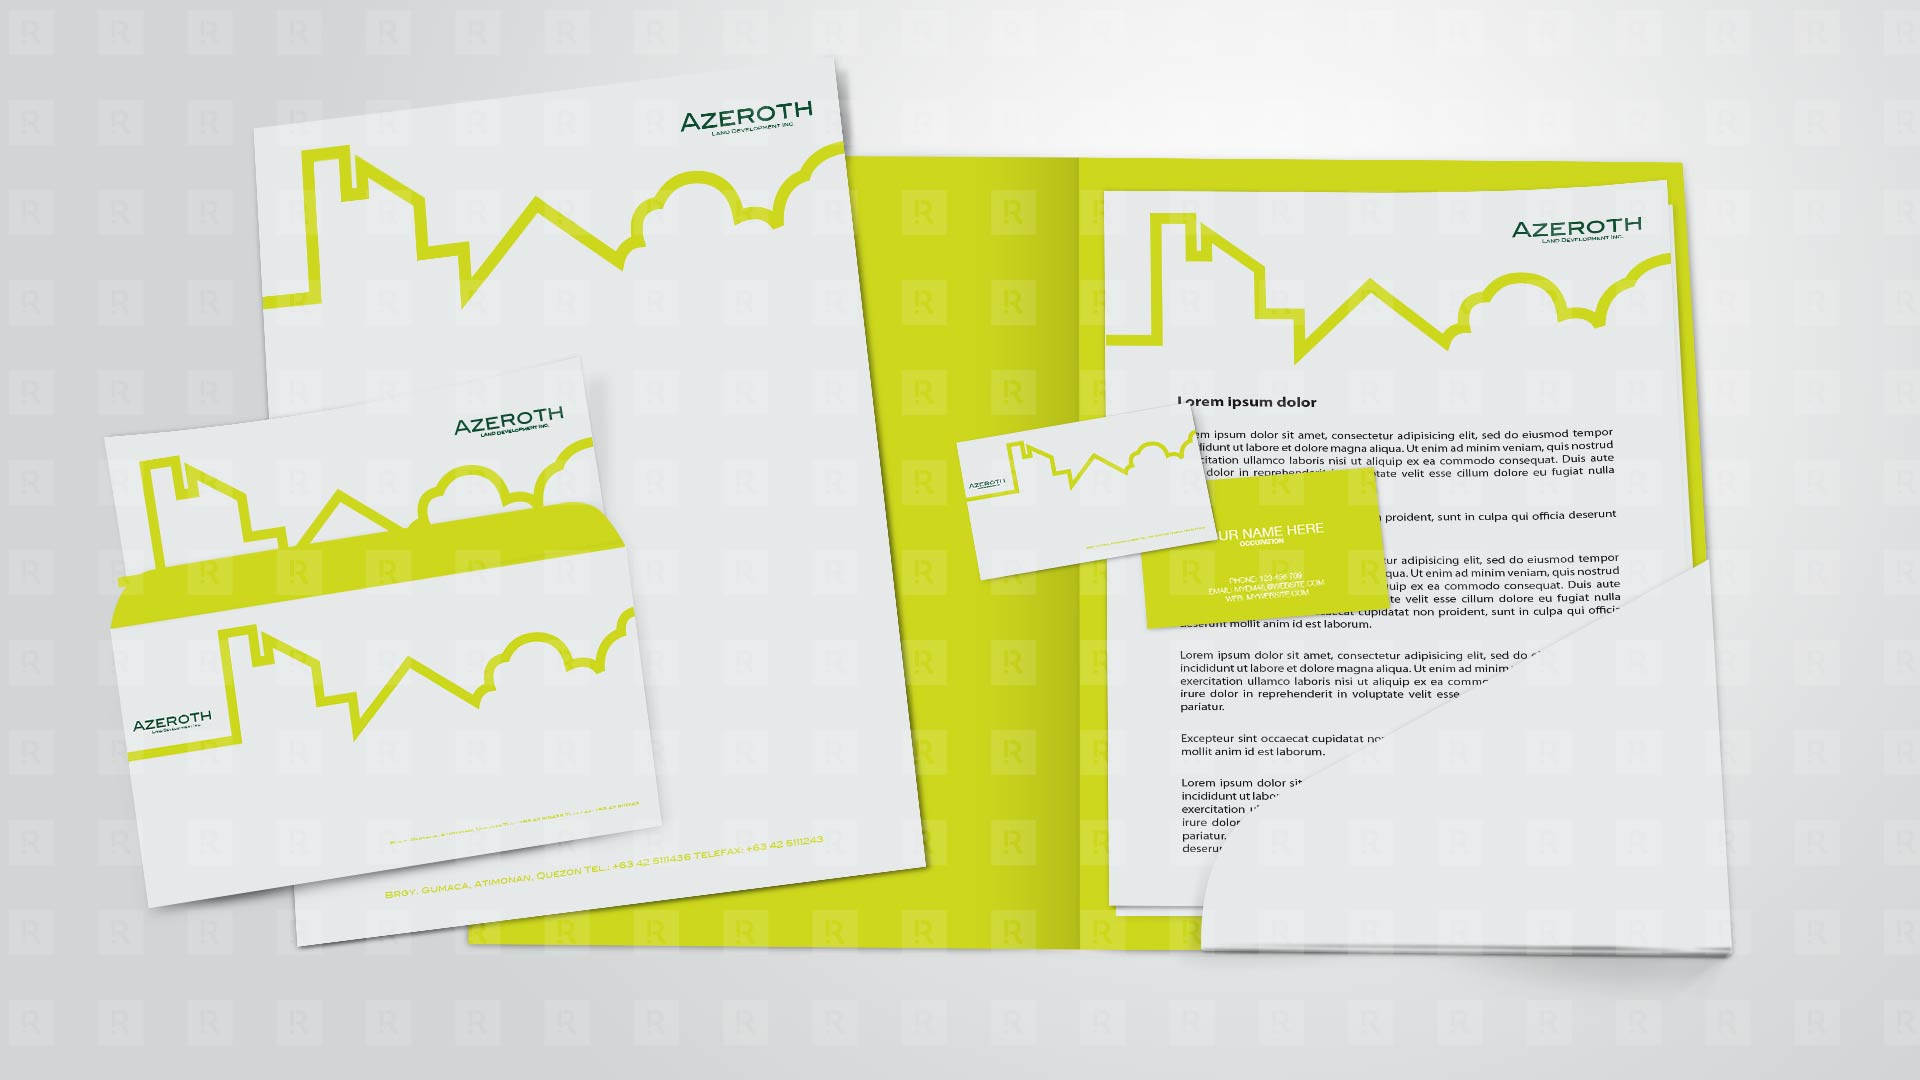 Azeroth Land Development Inc. corporate Identity Design